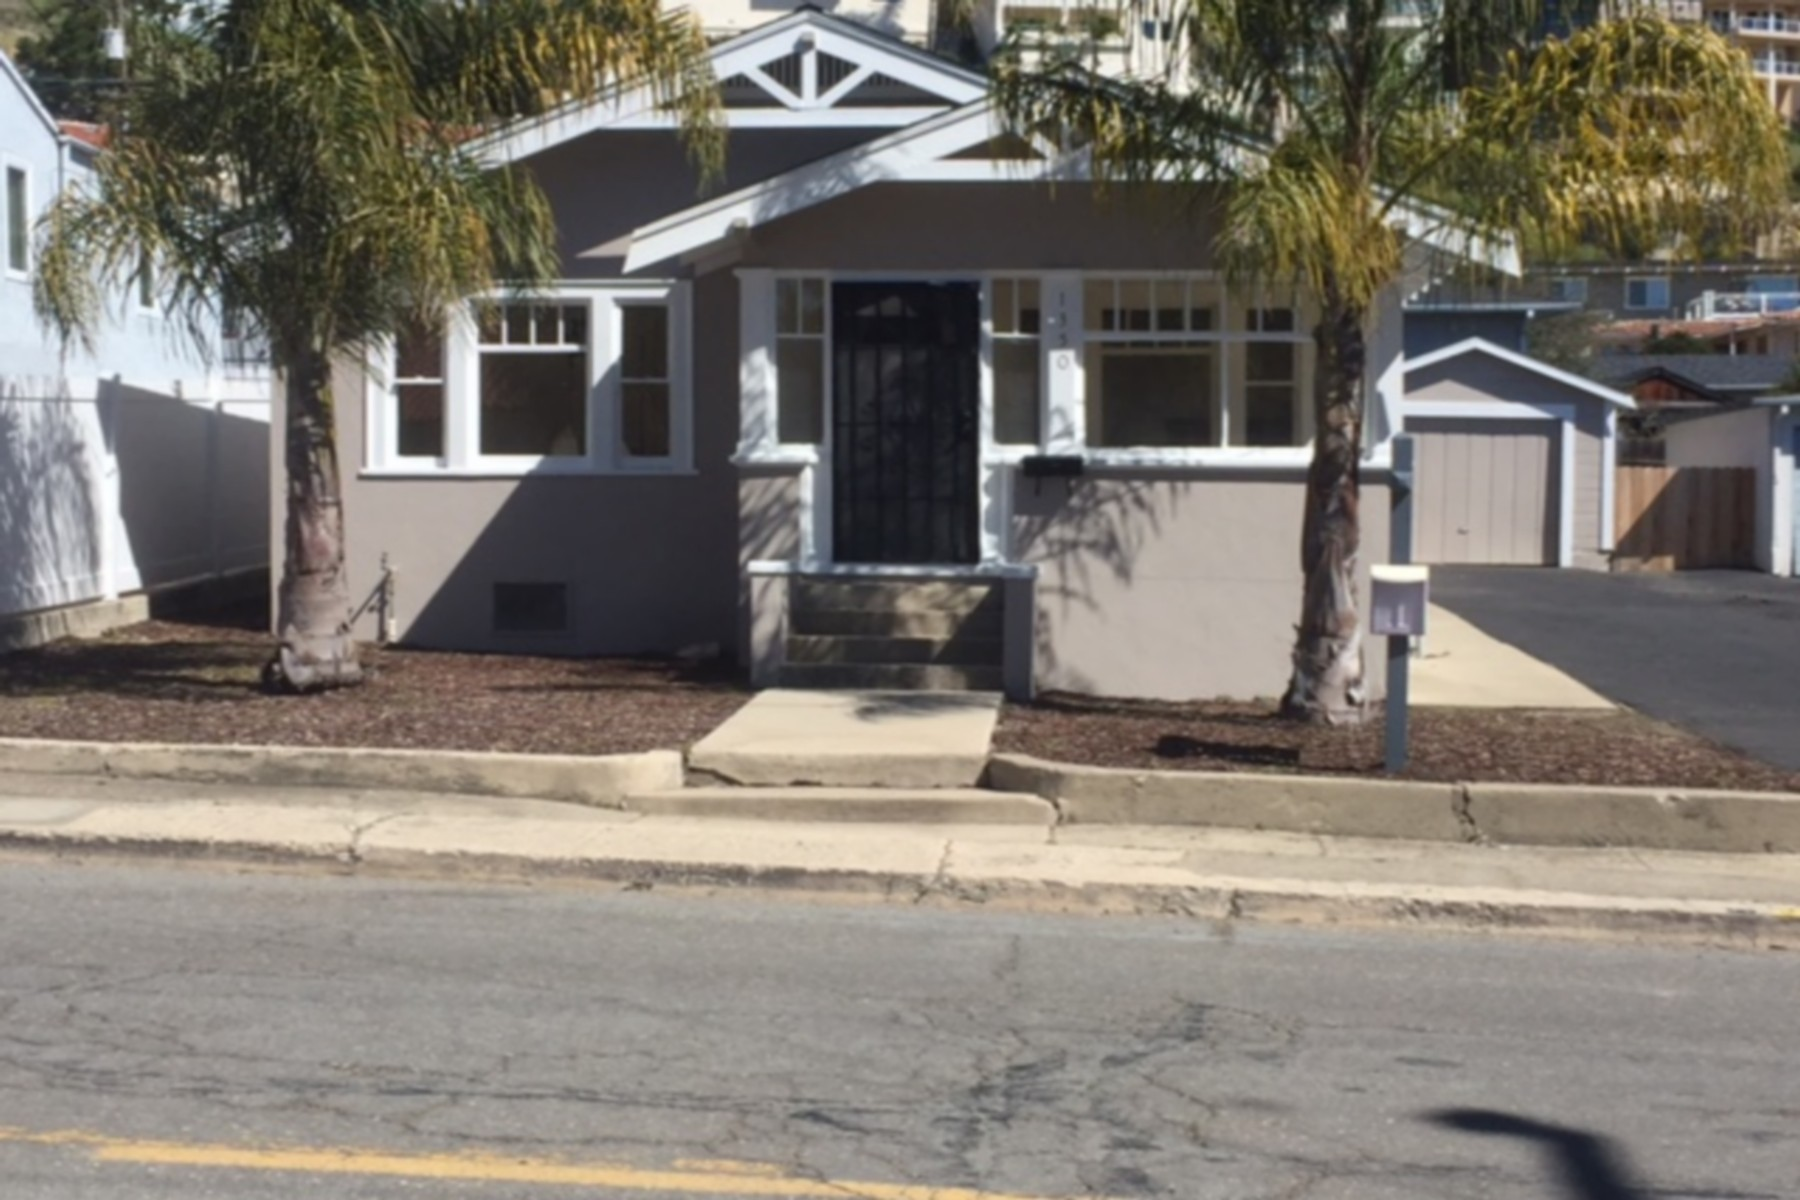 Single Family Home for Sale at Pismo Beach Bungalow 1350 Bello Pismo Beach, California 93449 United States